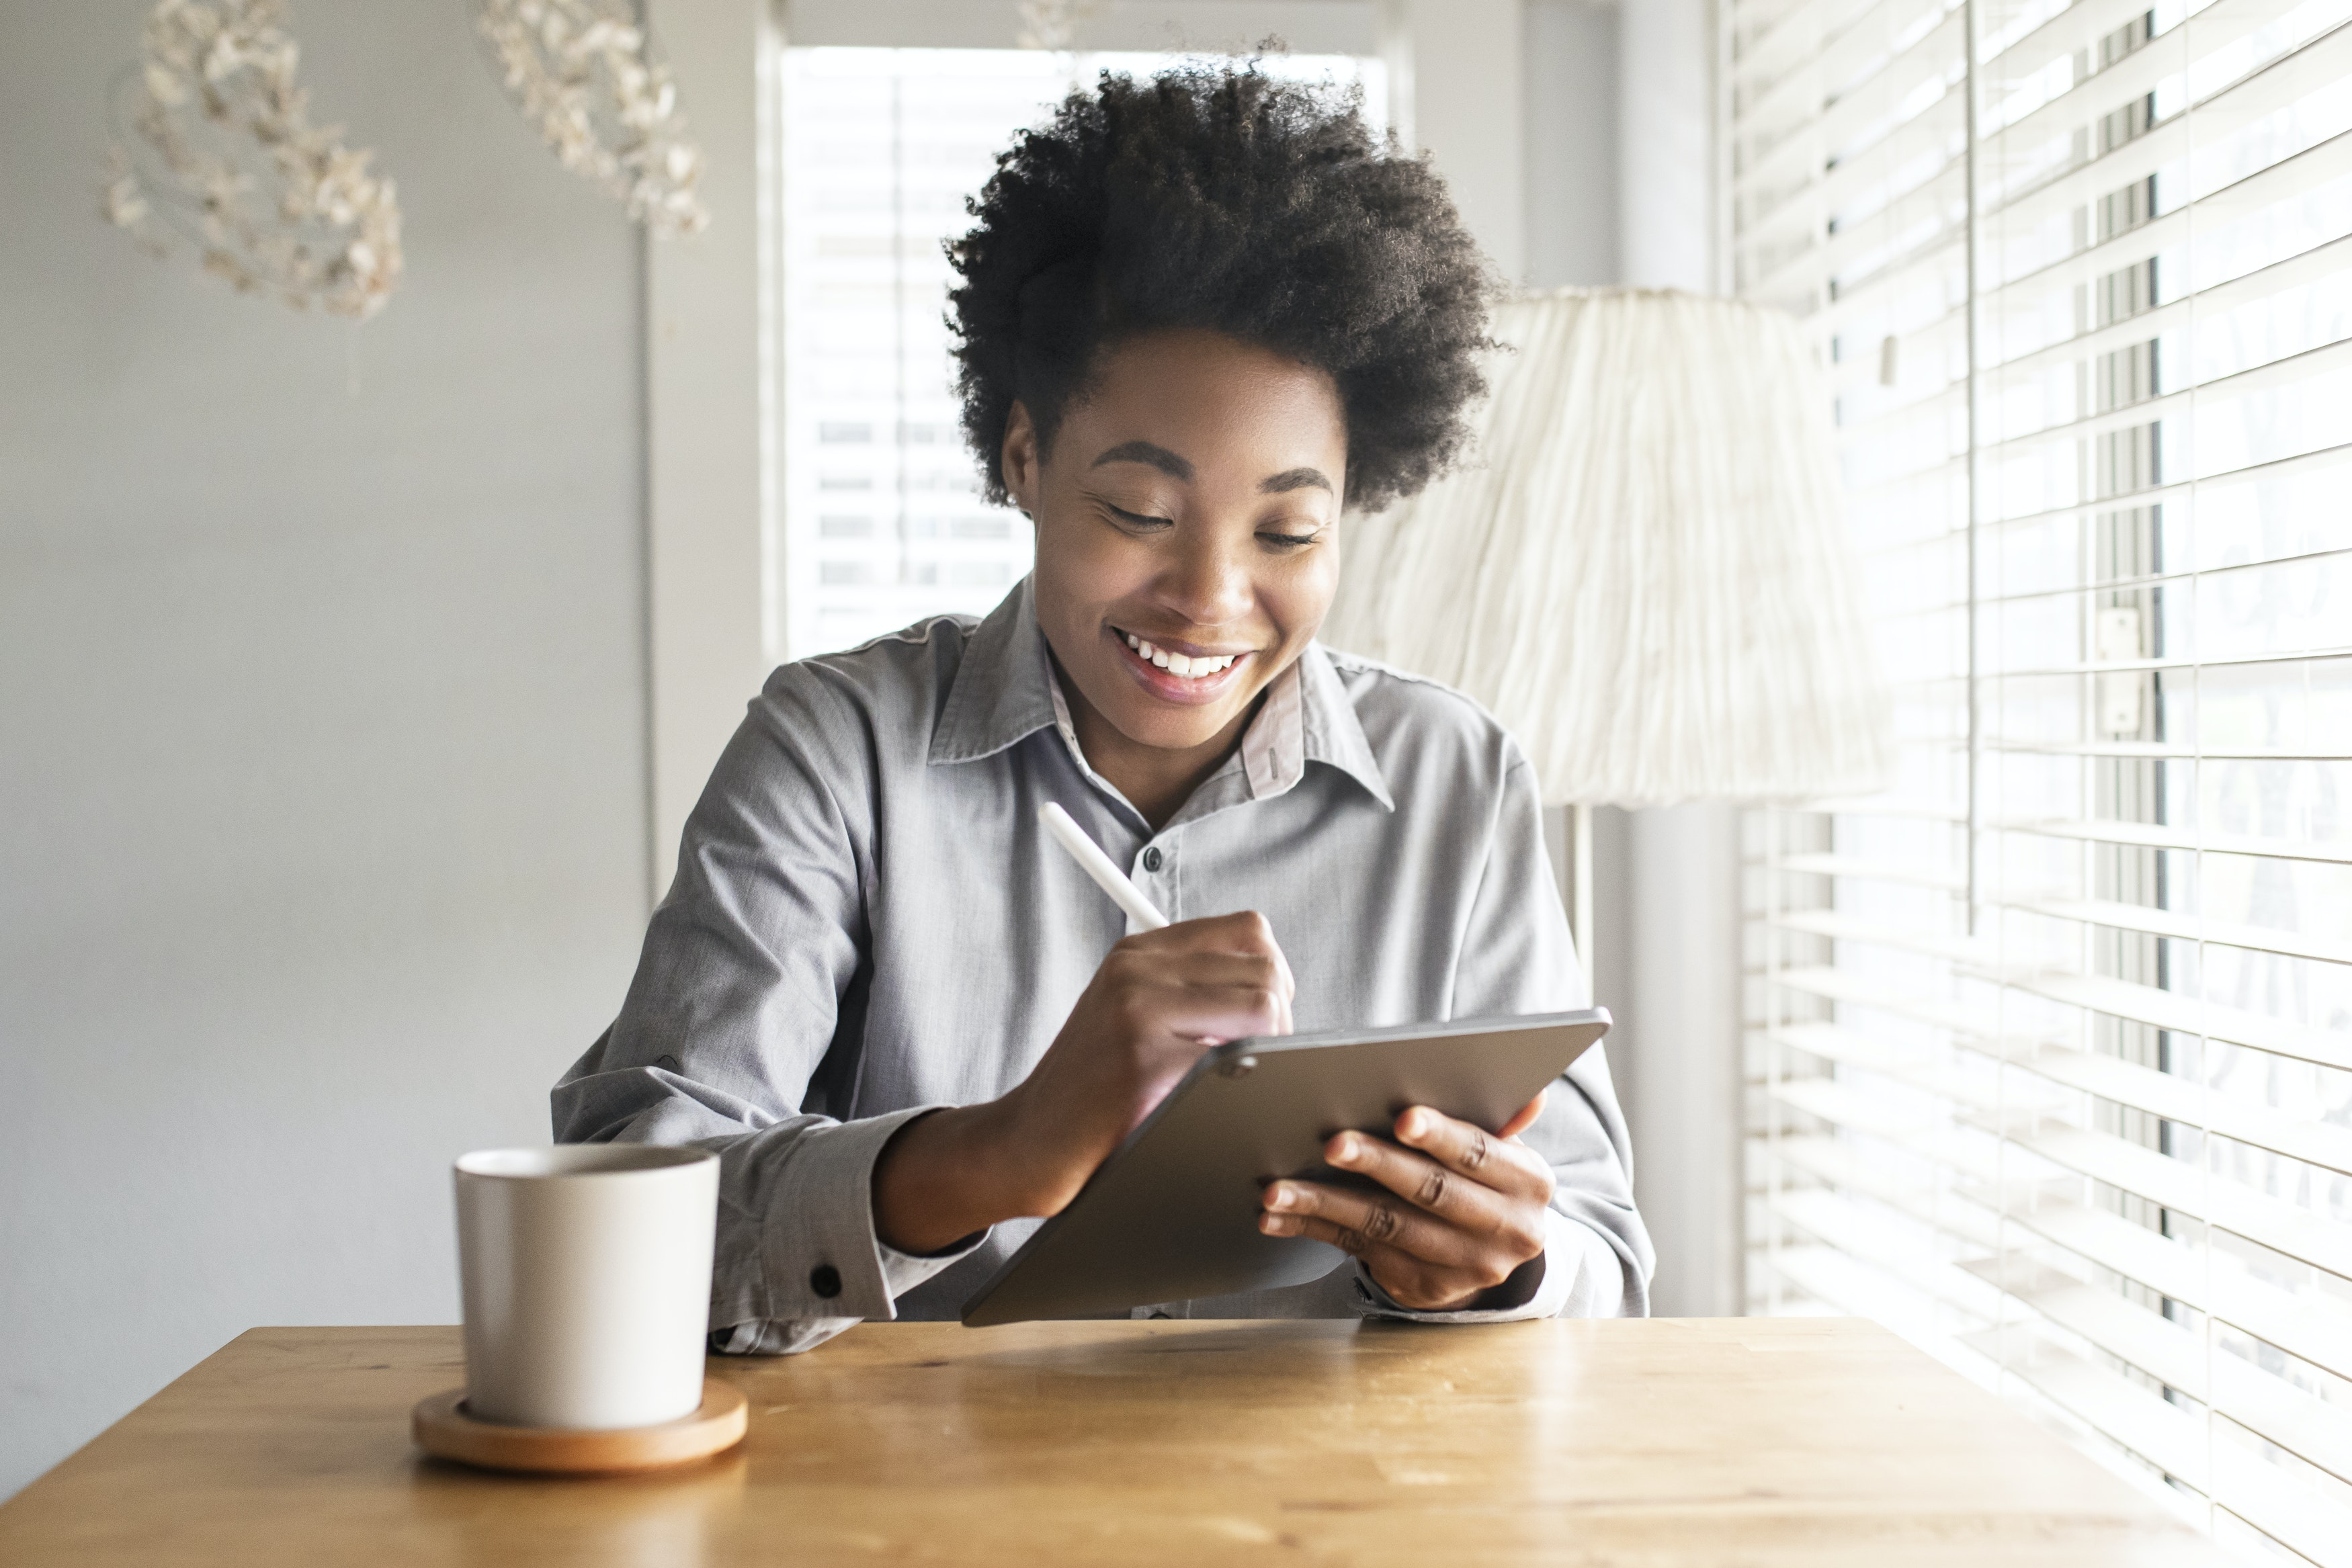 A woman smiles at her therapist while they have an online therapy session.